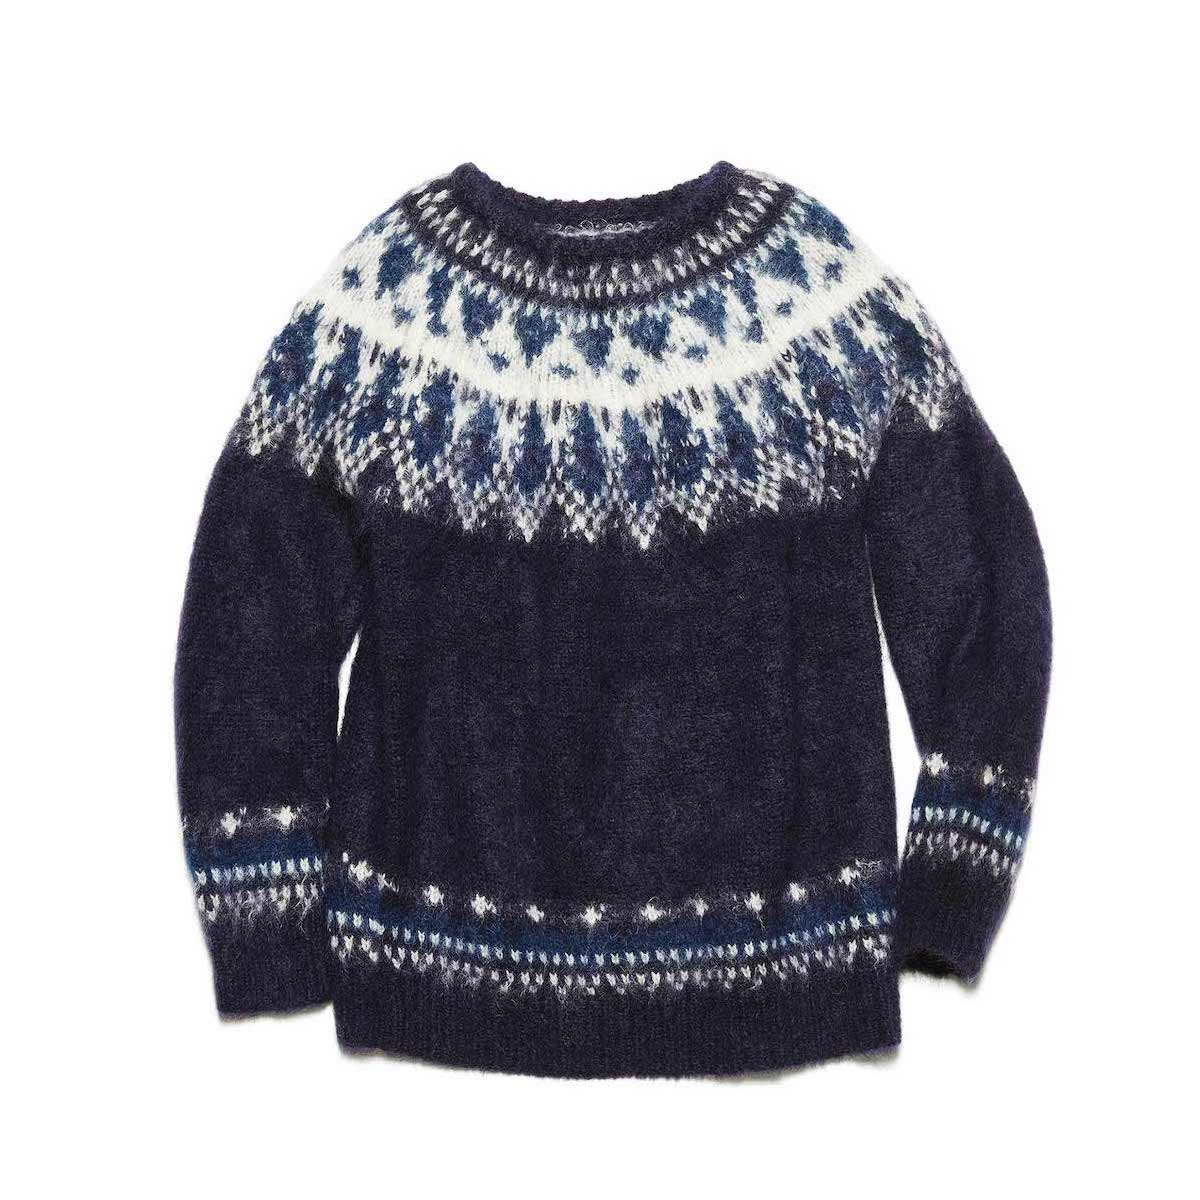 uniform experiment / NORDIC MOHAIR CREWNECK KNIT (Navy)正面